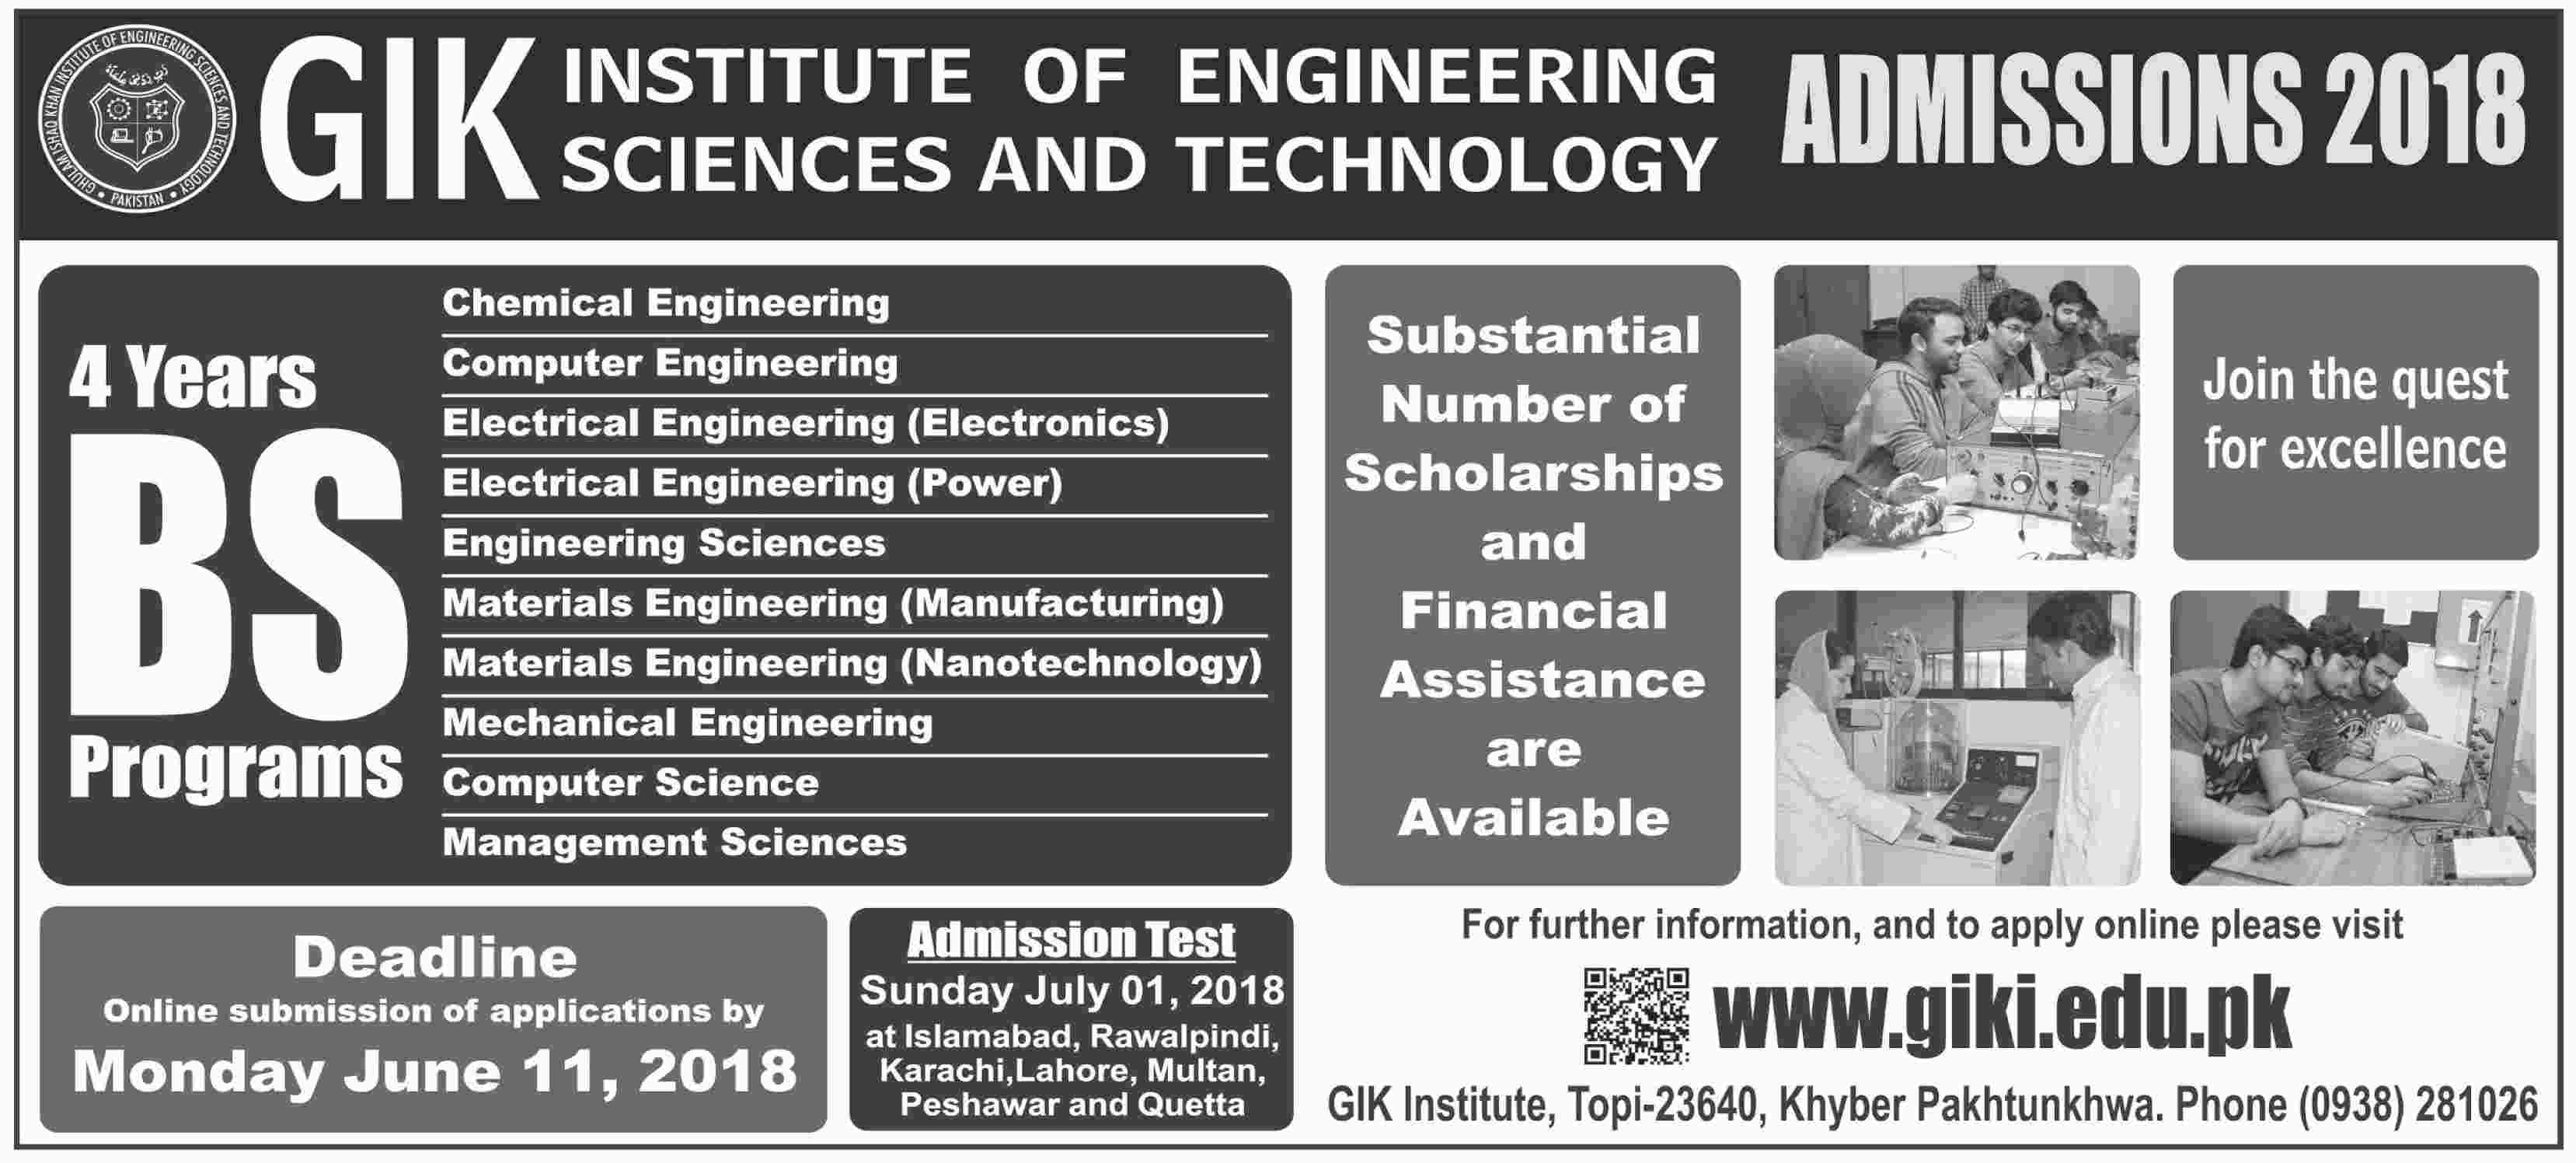 GIKI Admissions 2018 Eligibility Criteria Procedure Requirements